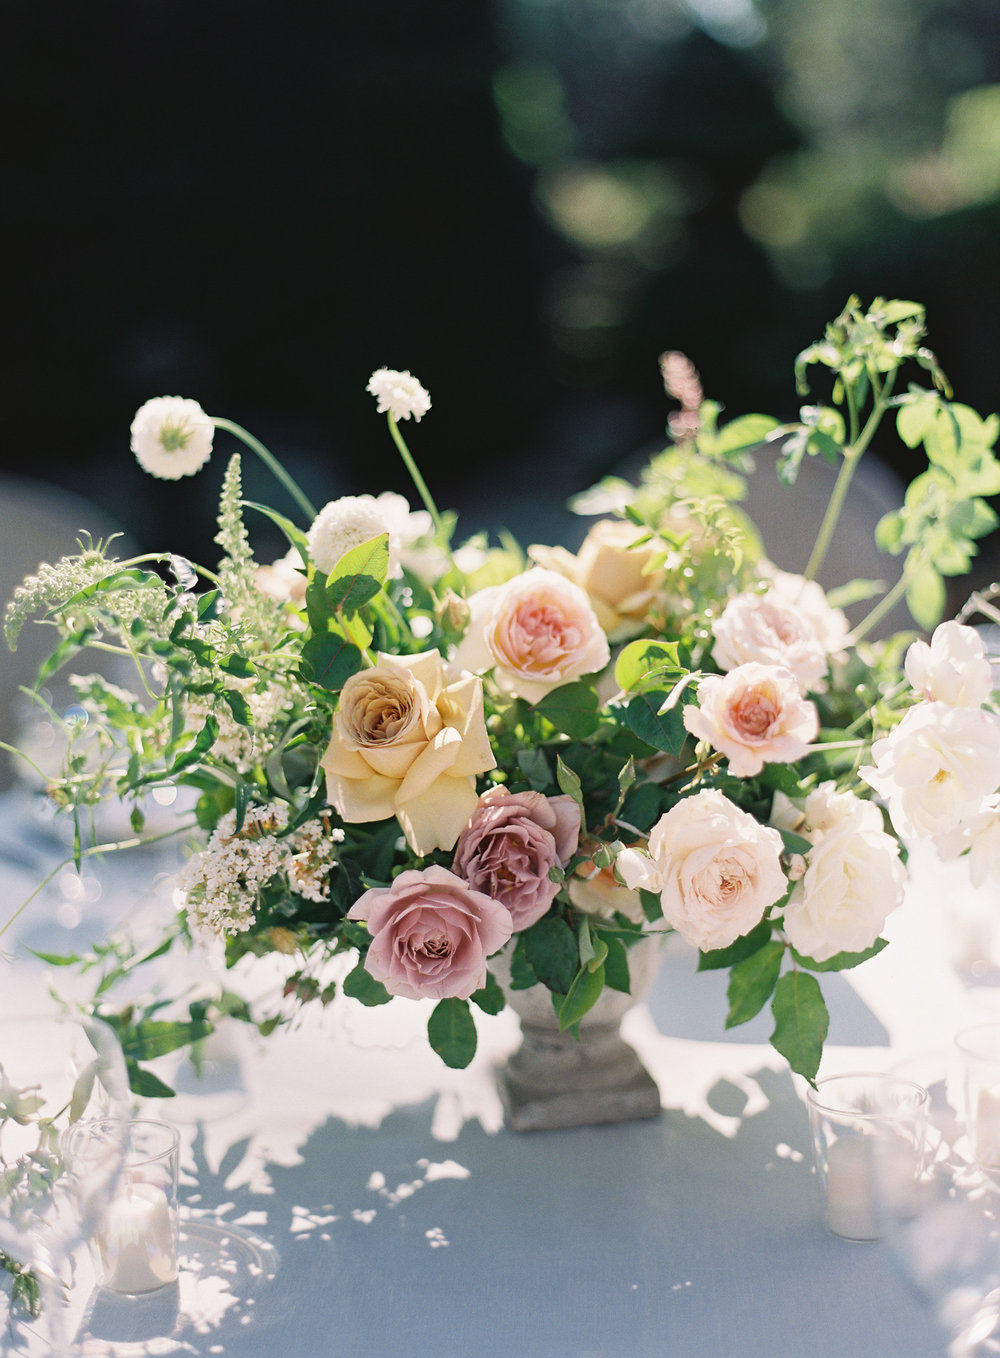 table centerpiece with garden roses and greenery